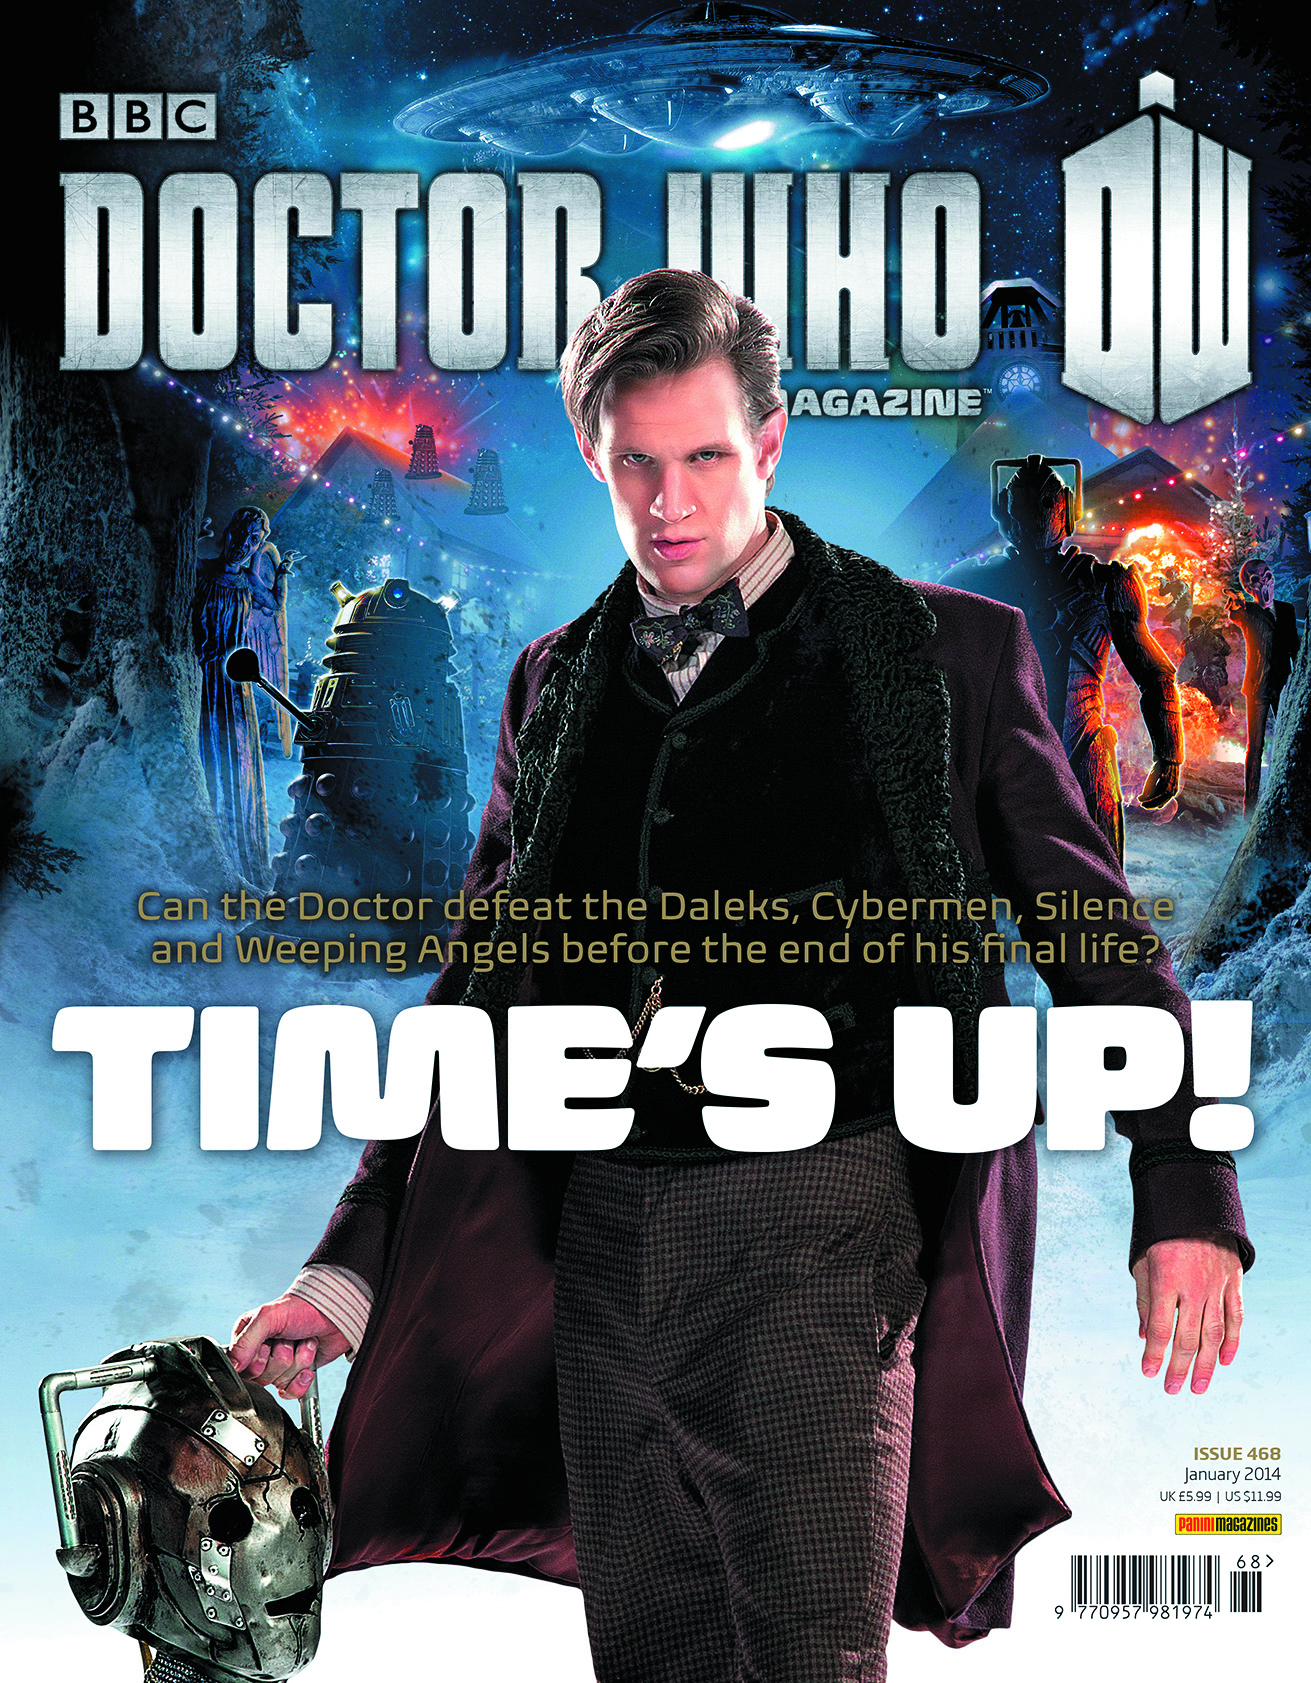 DOCTOR WHO MAGAZINE #473